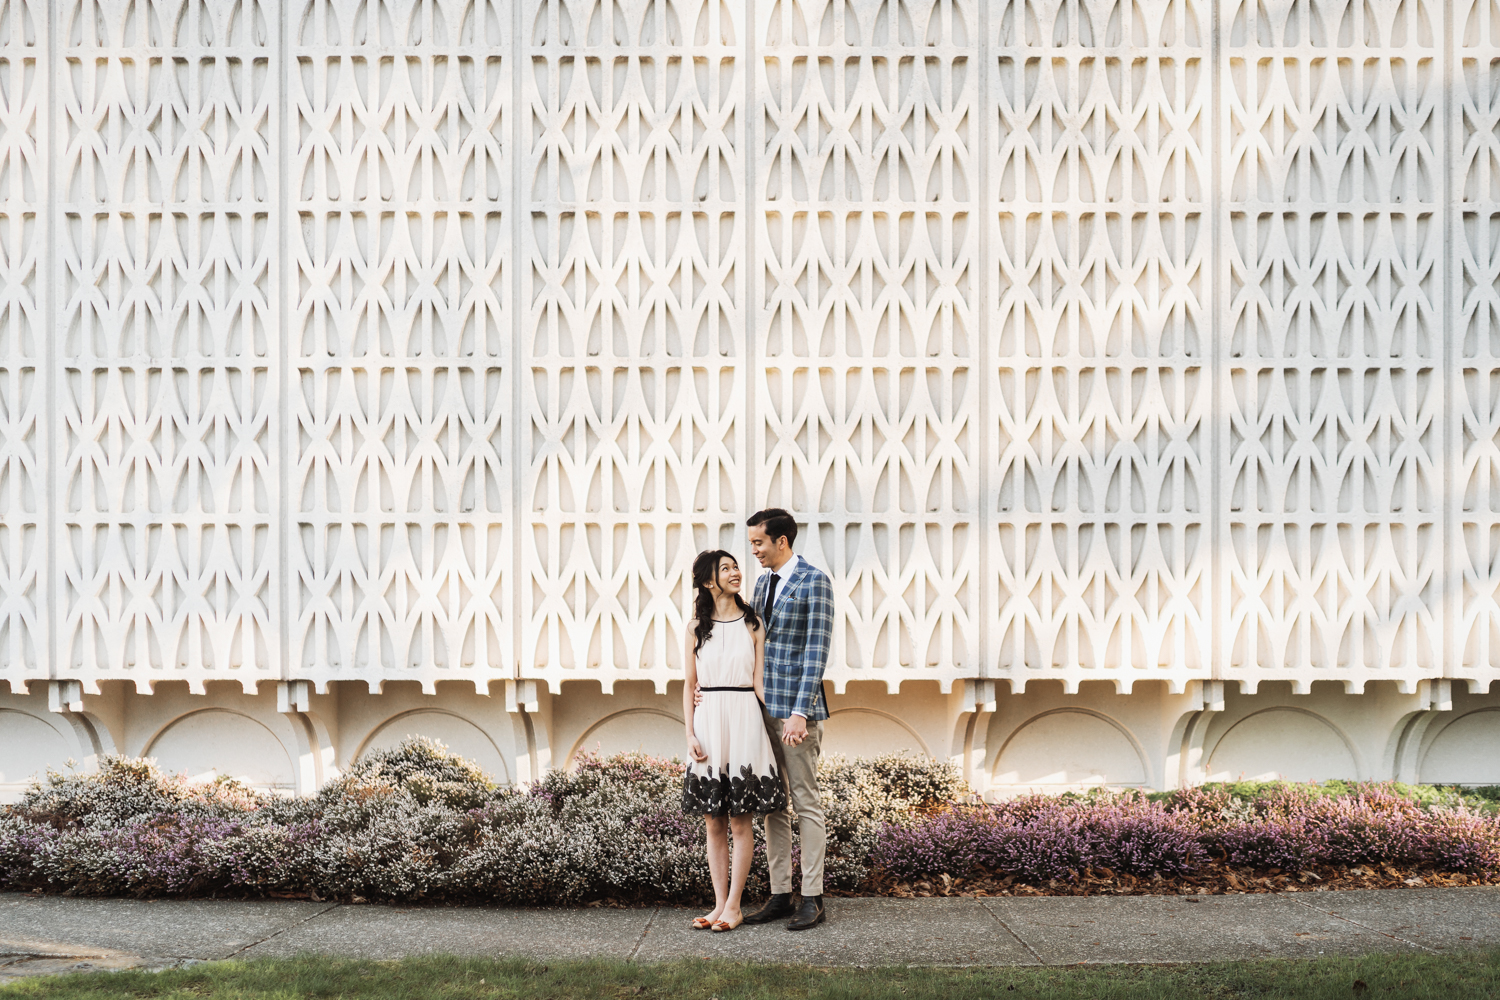 vancouver museum of vancouver architecture engagement photography during cherry blossom season